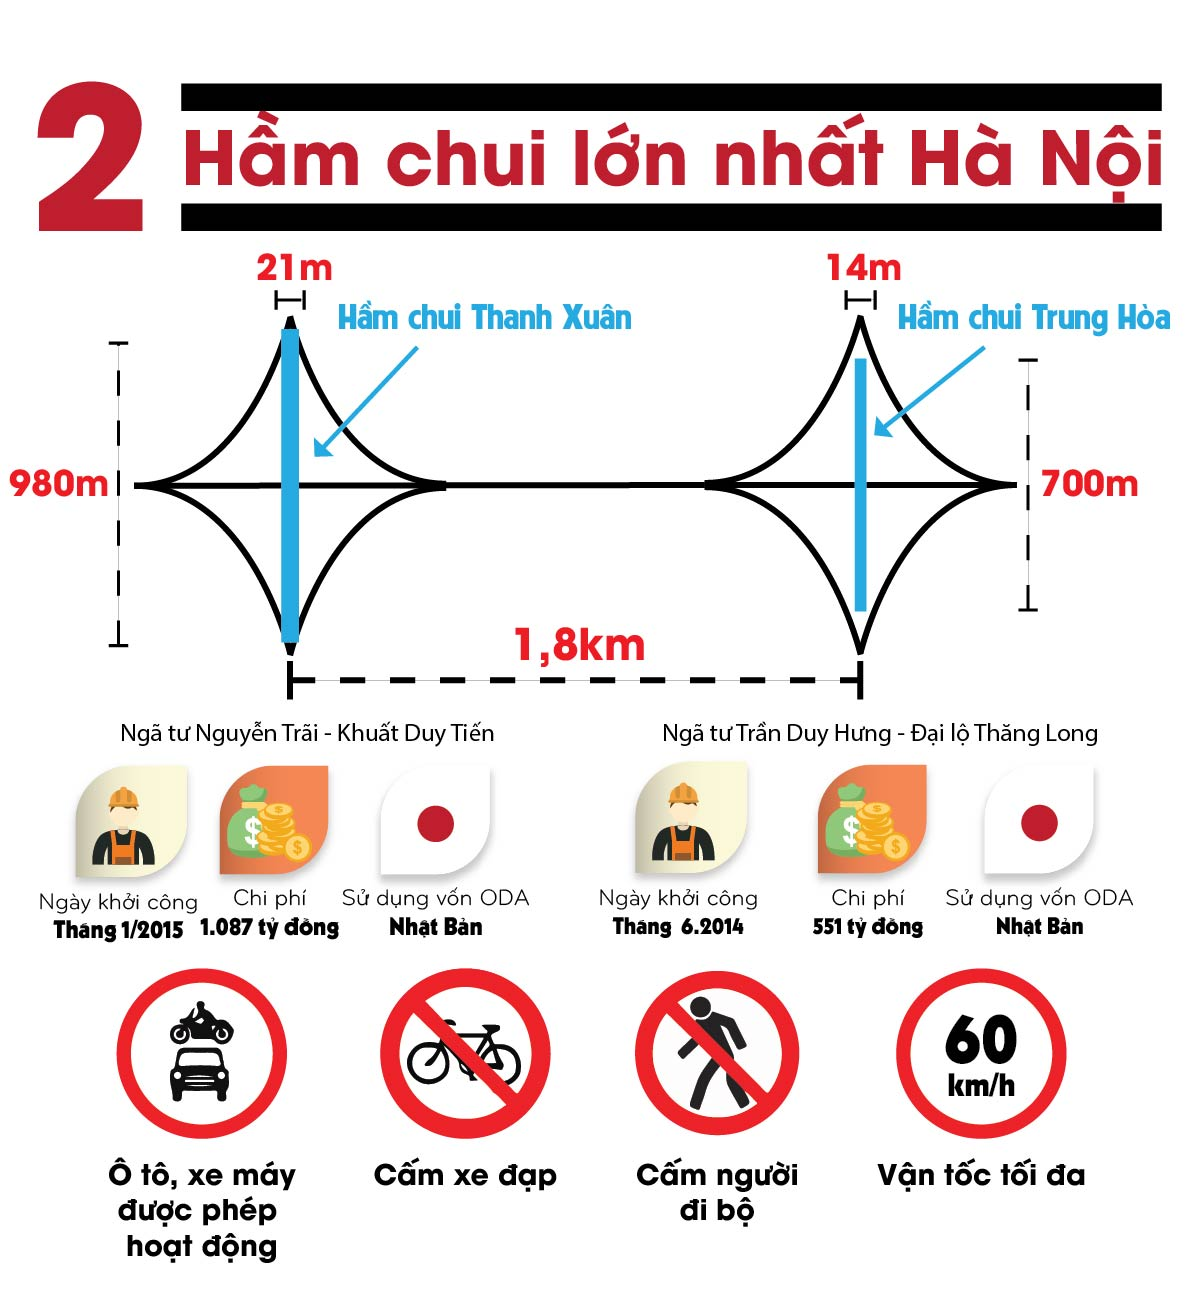 [infographic] toan canh 2 ham chui lon nhat ha noi hinh anh 1